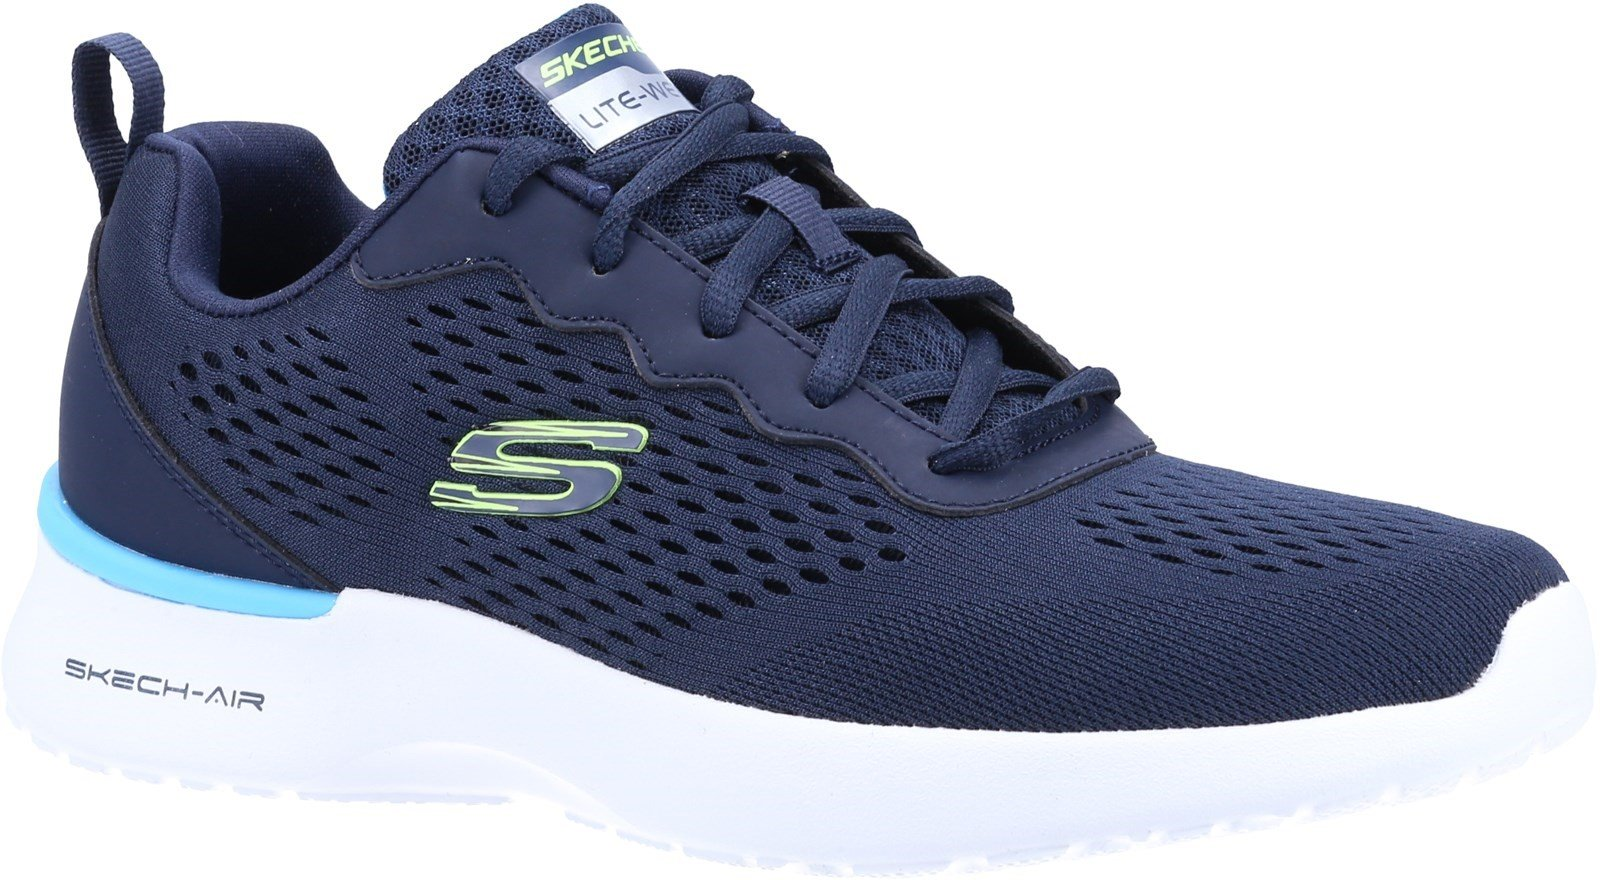 Skechers Men's Skech-Air Dynamight Sports Trainer Various Colours 32186 - Navy 6